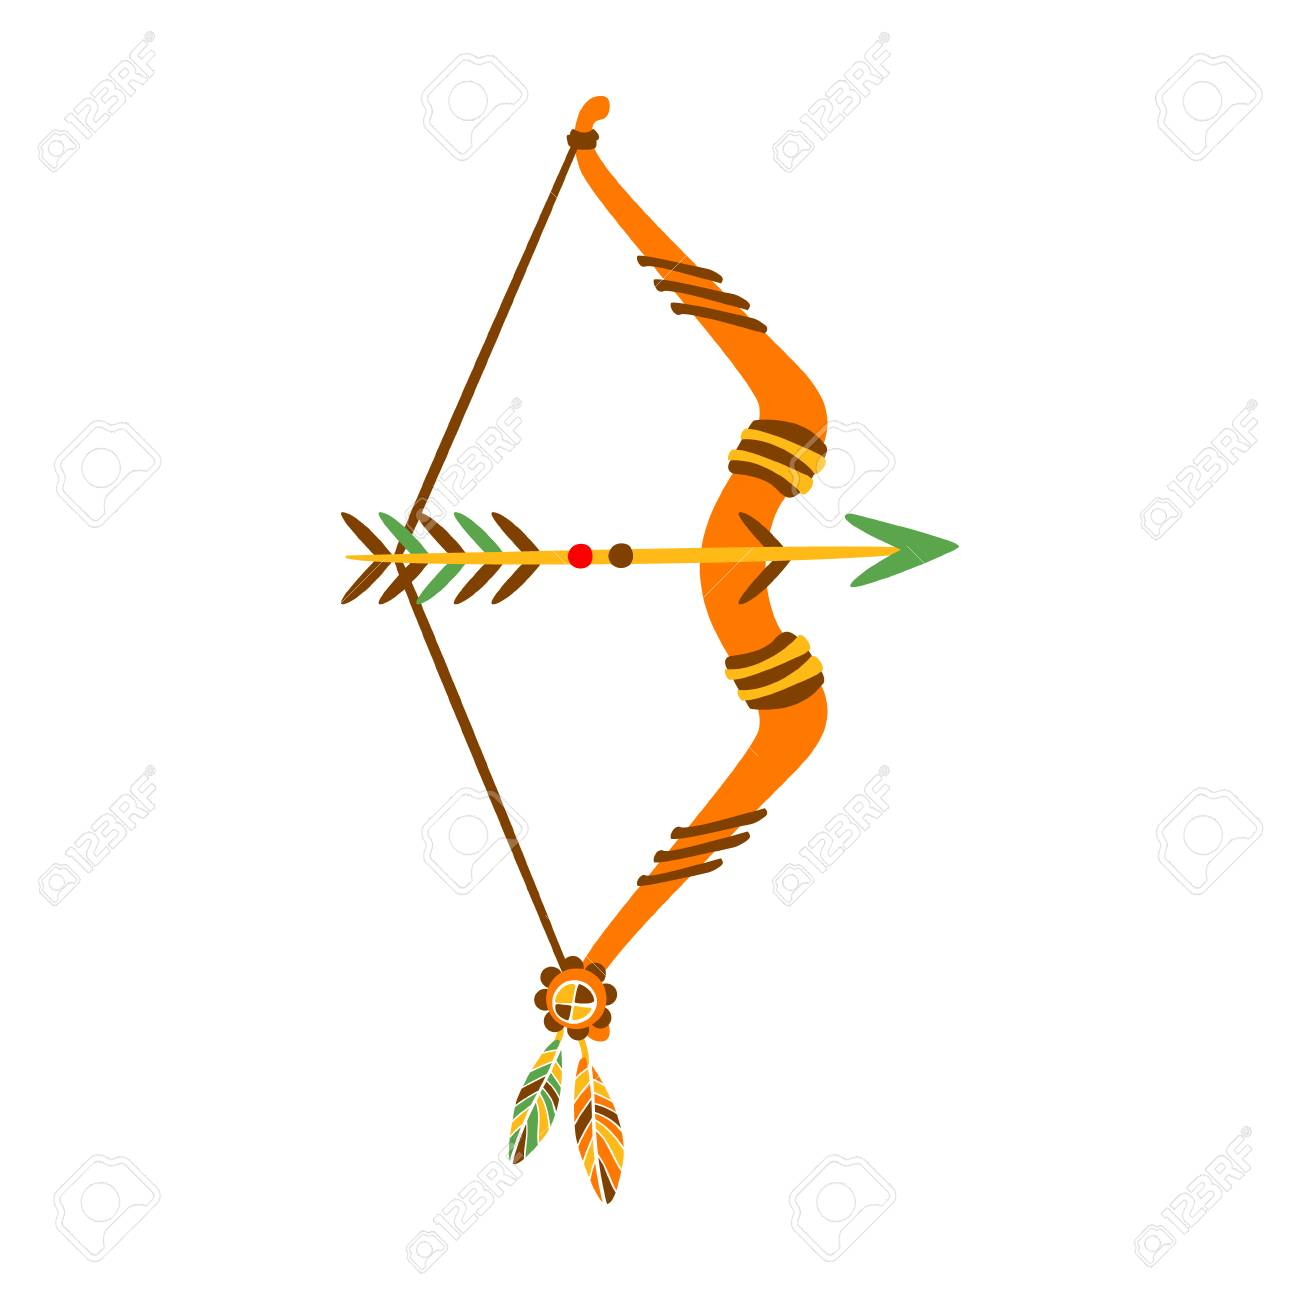 Bow With Arrow Decorated With Feathers, Native Indian Culture...